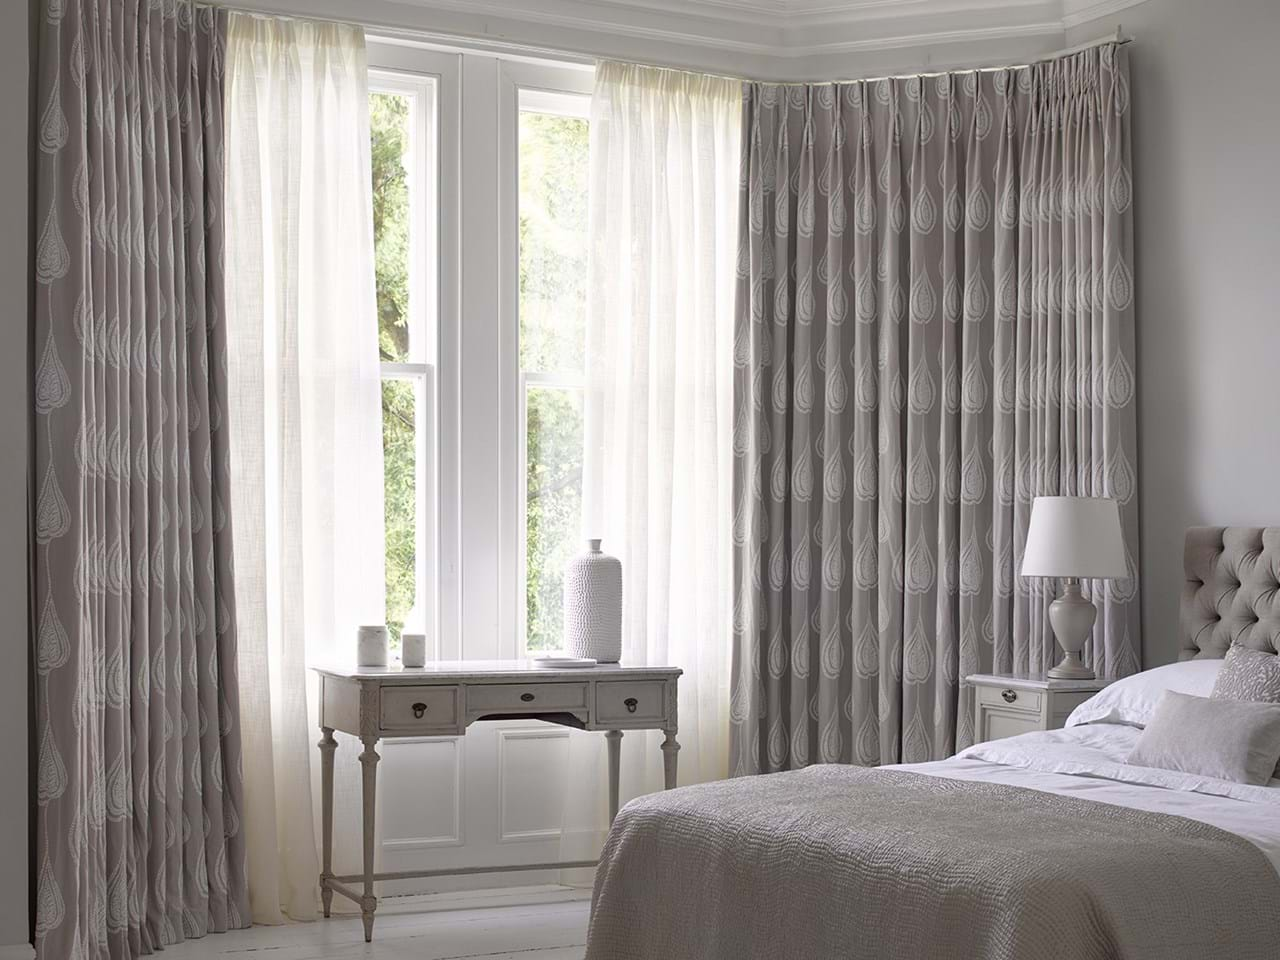 grey curtains matched with voile curtains on a door window in a bedroom decorated in grey and features a bed side table